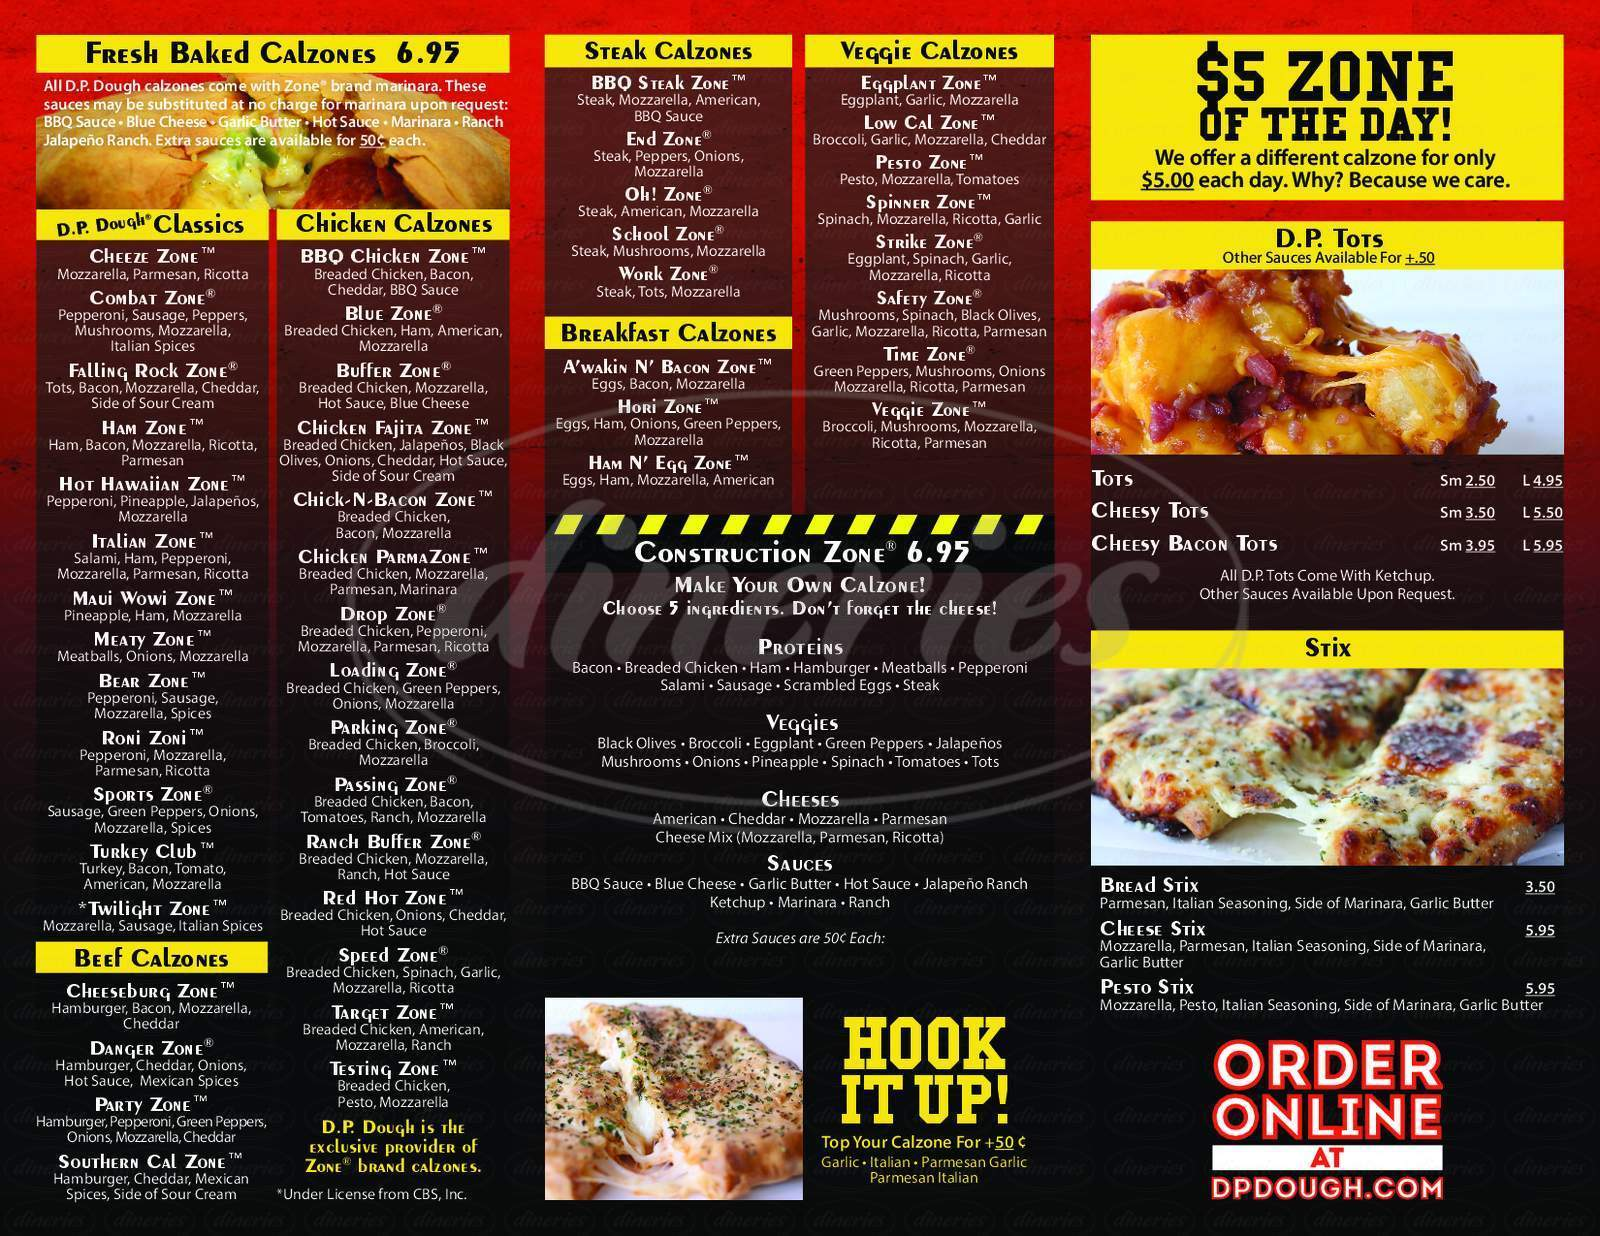 menu for D.P. Dough